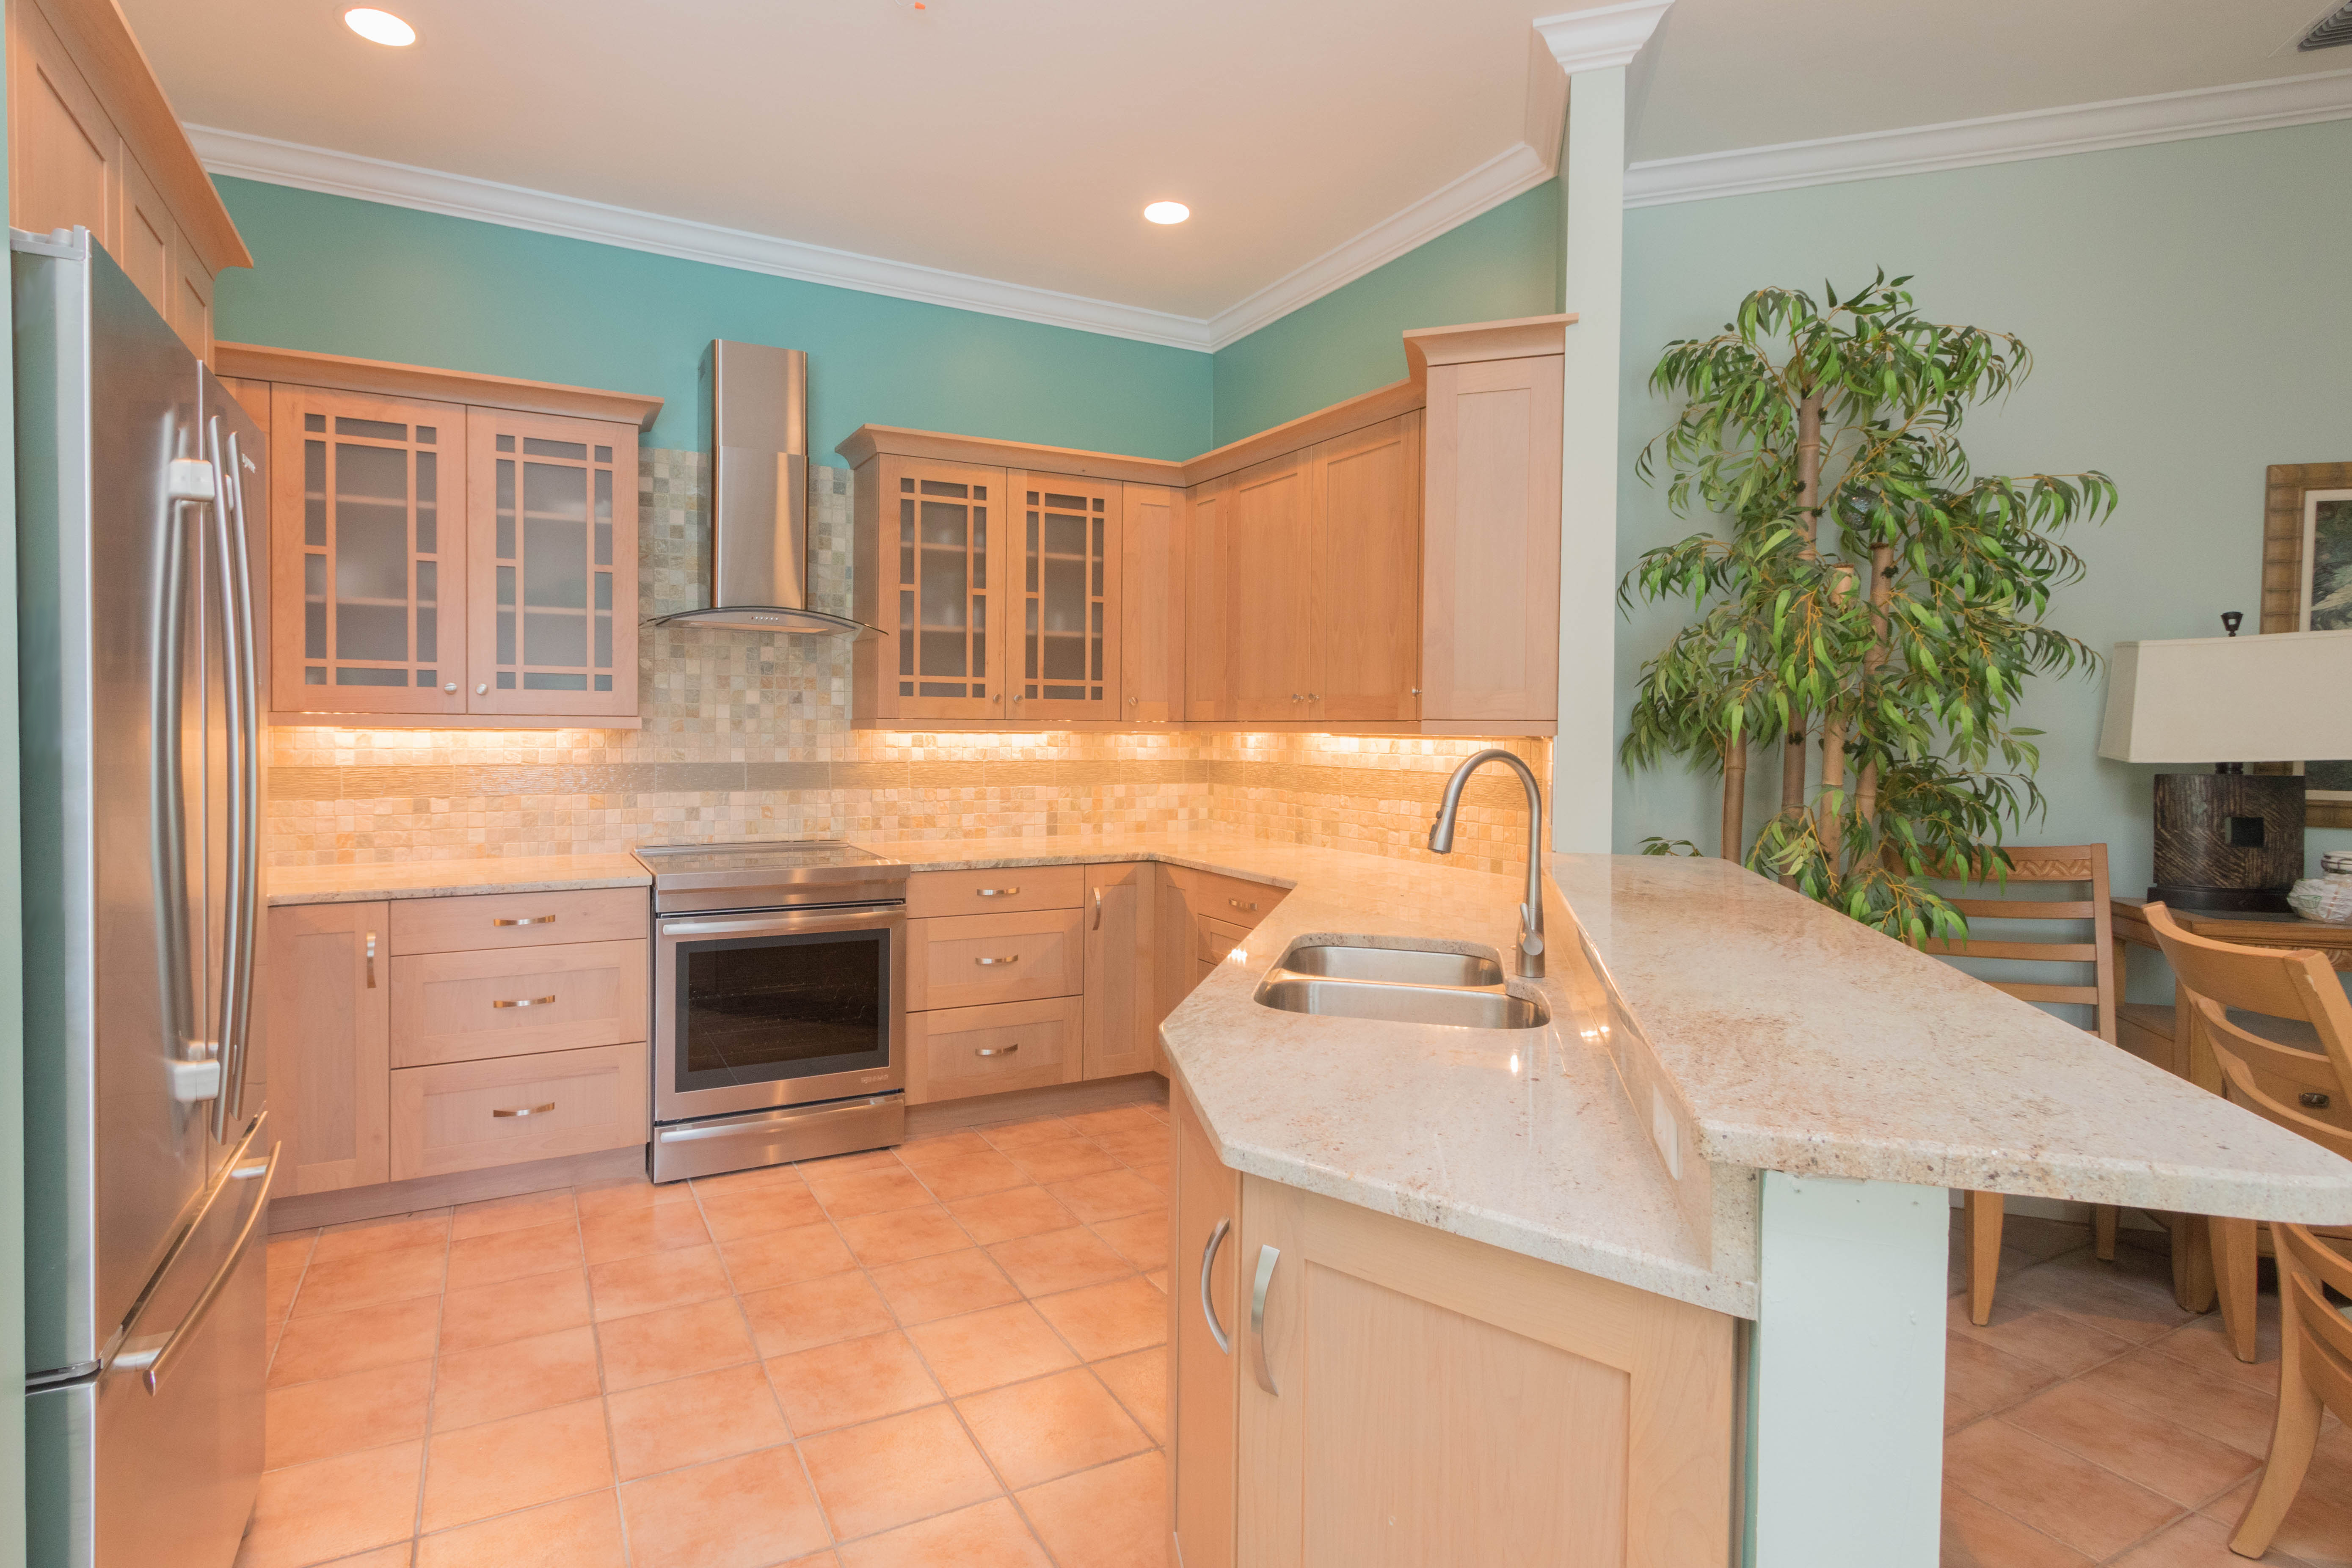 Harbour Isle Y R Cabinet Genies Kitchen And Bathroom Remodeling Cape Coral Fl